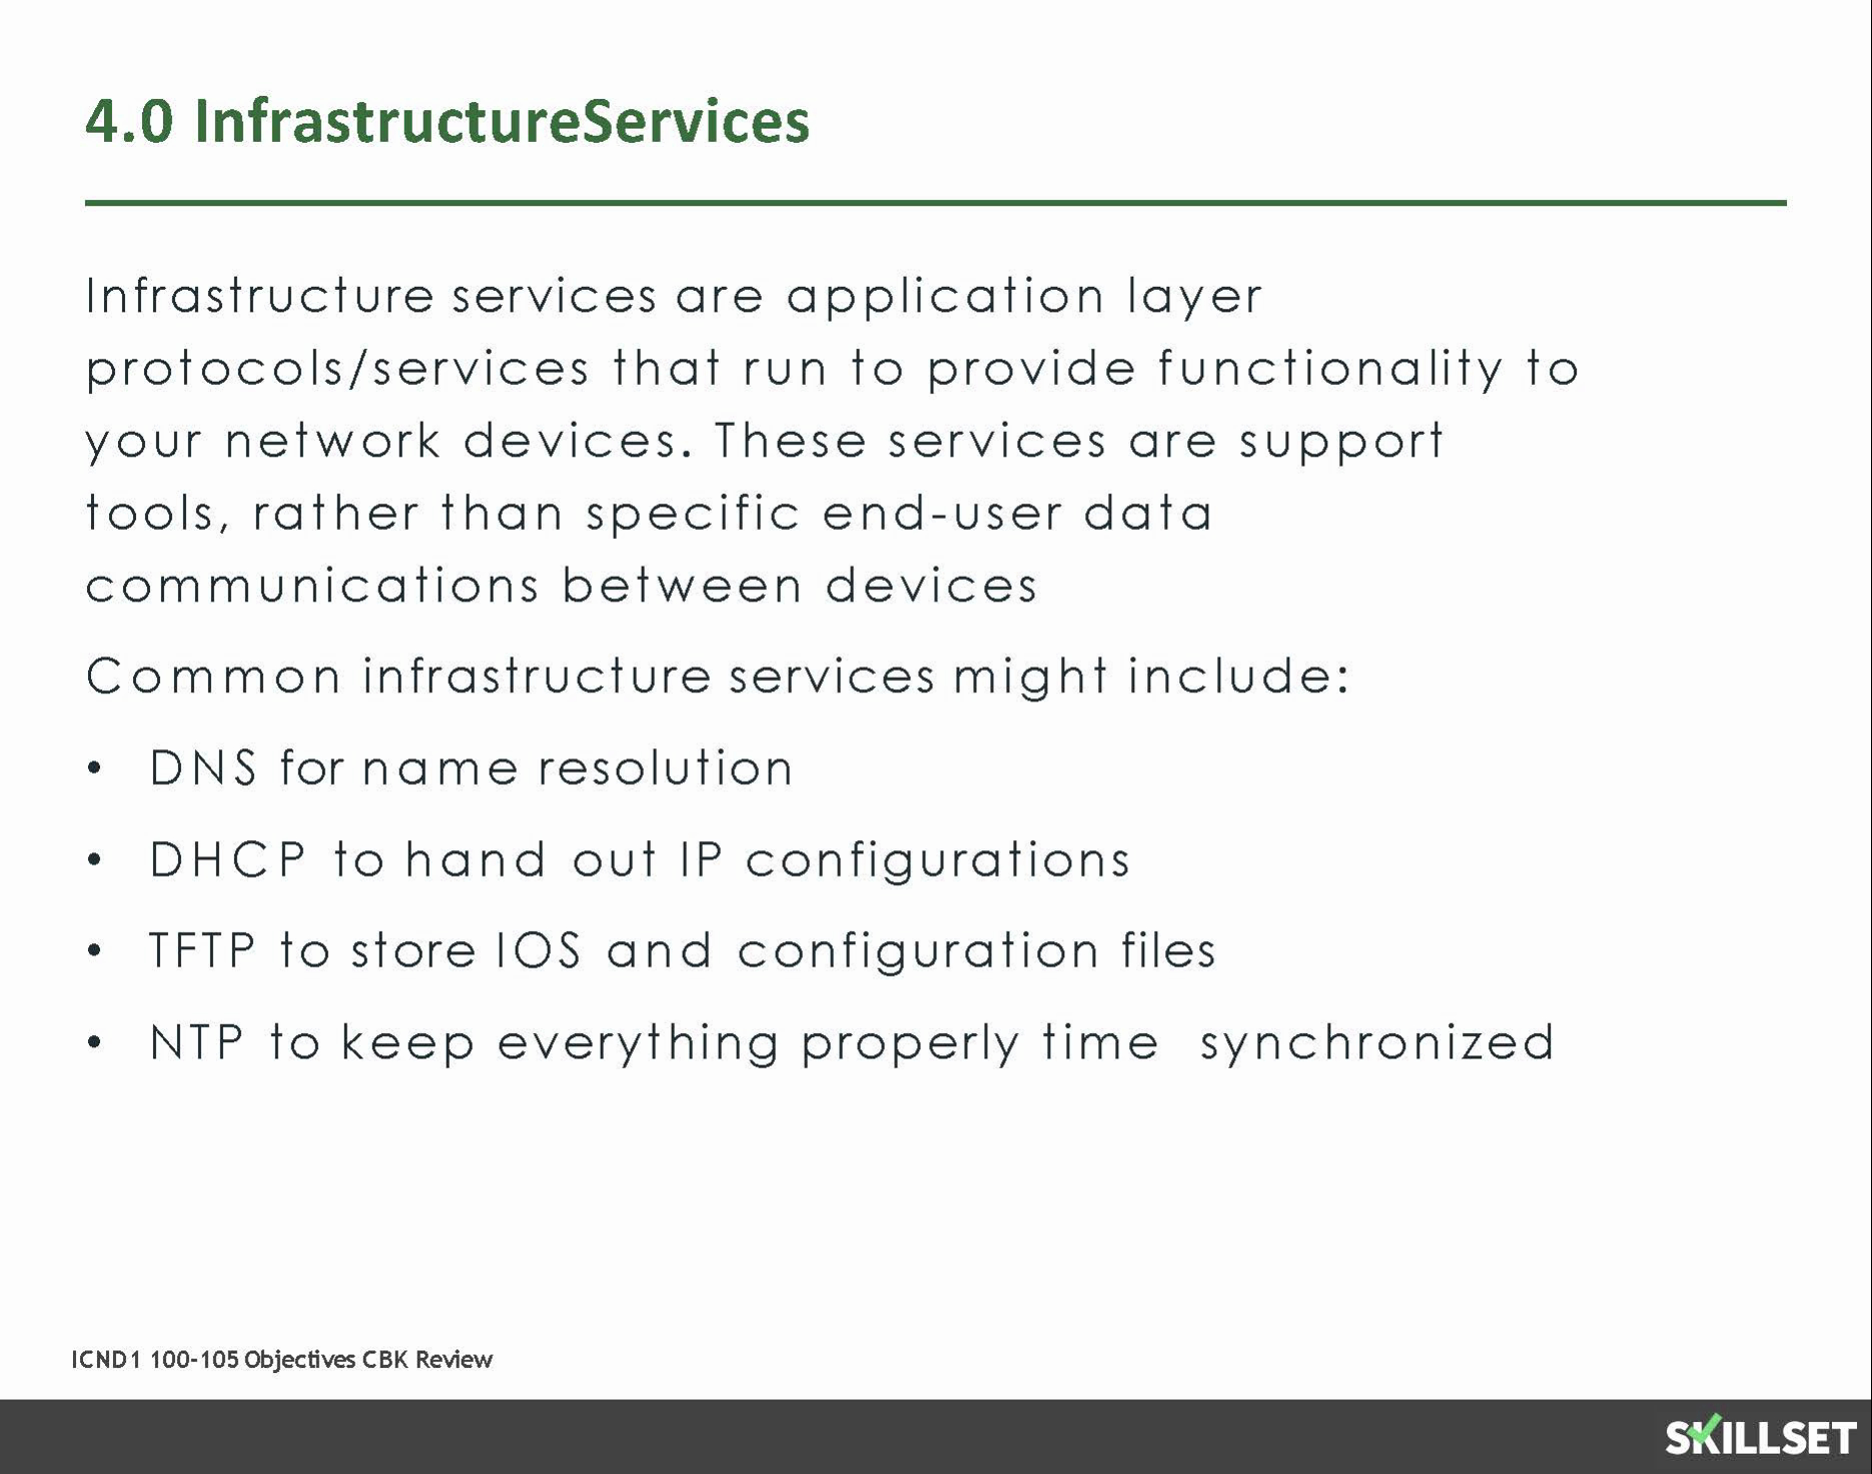 4.0 Infrastructure Services